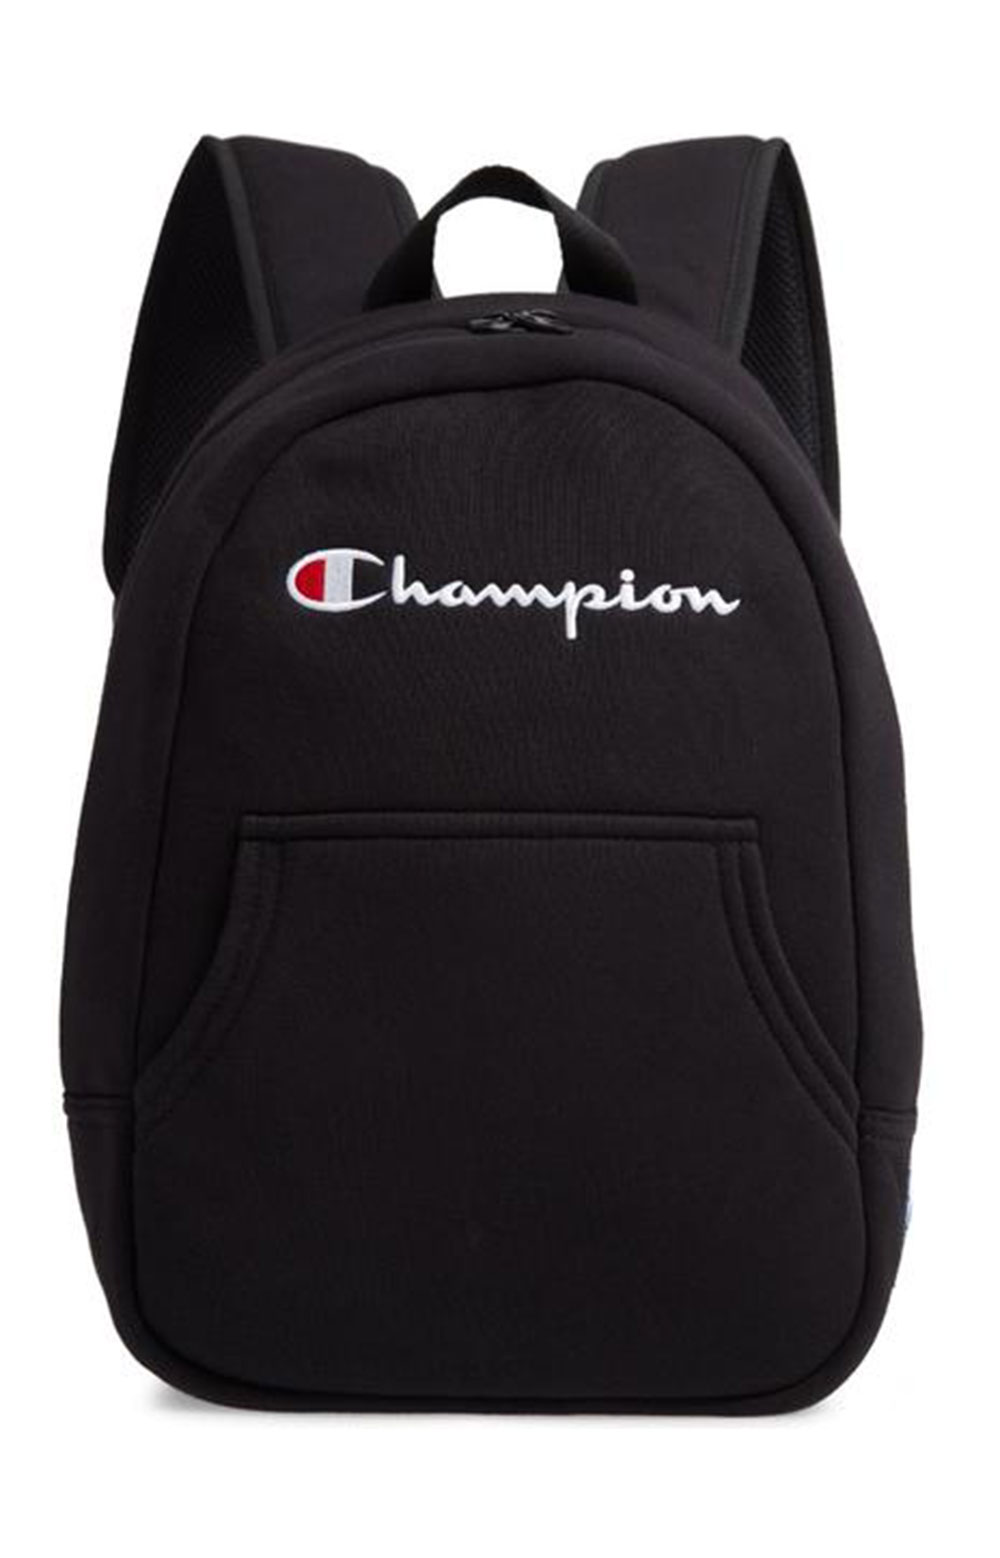 (Ch1067) Champion Reverse Weave Pullover Backpack - Black